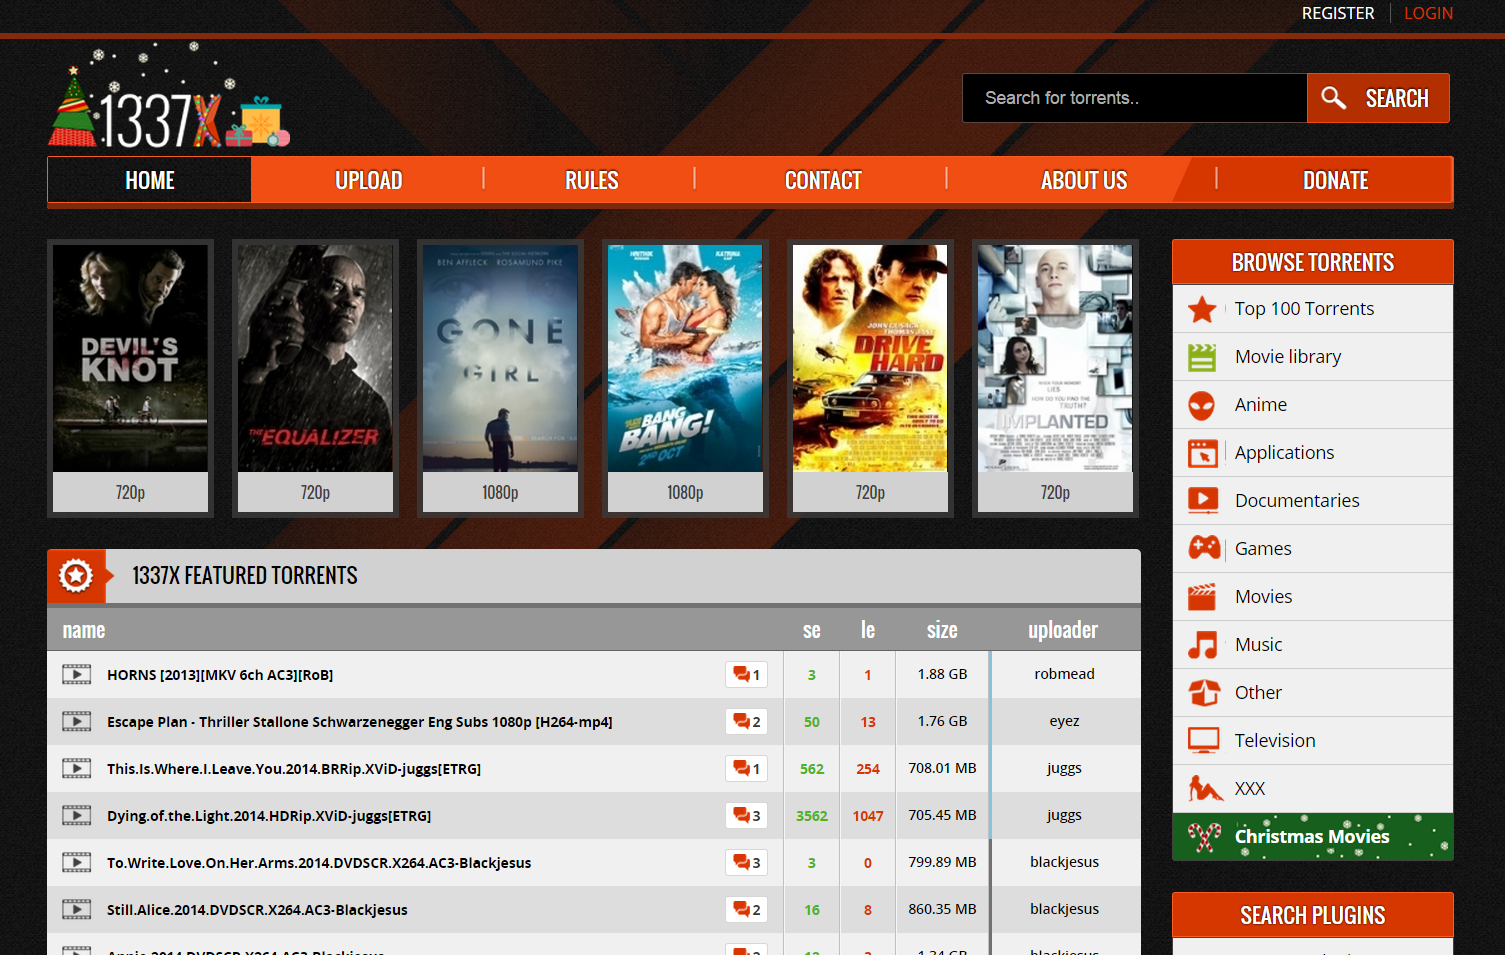 1337xto download verified torrents movies music games